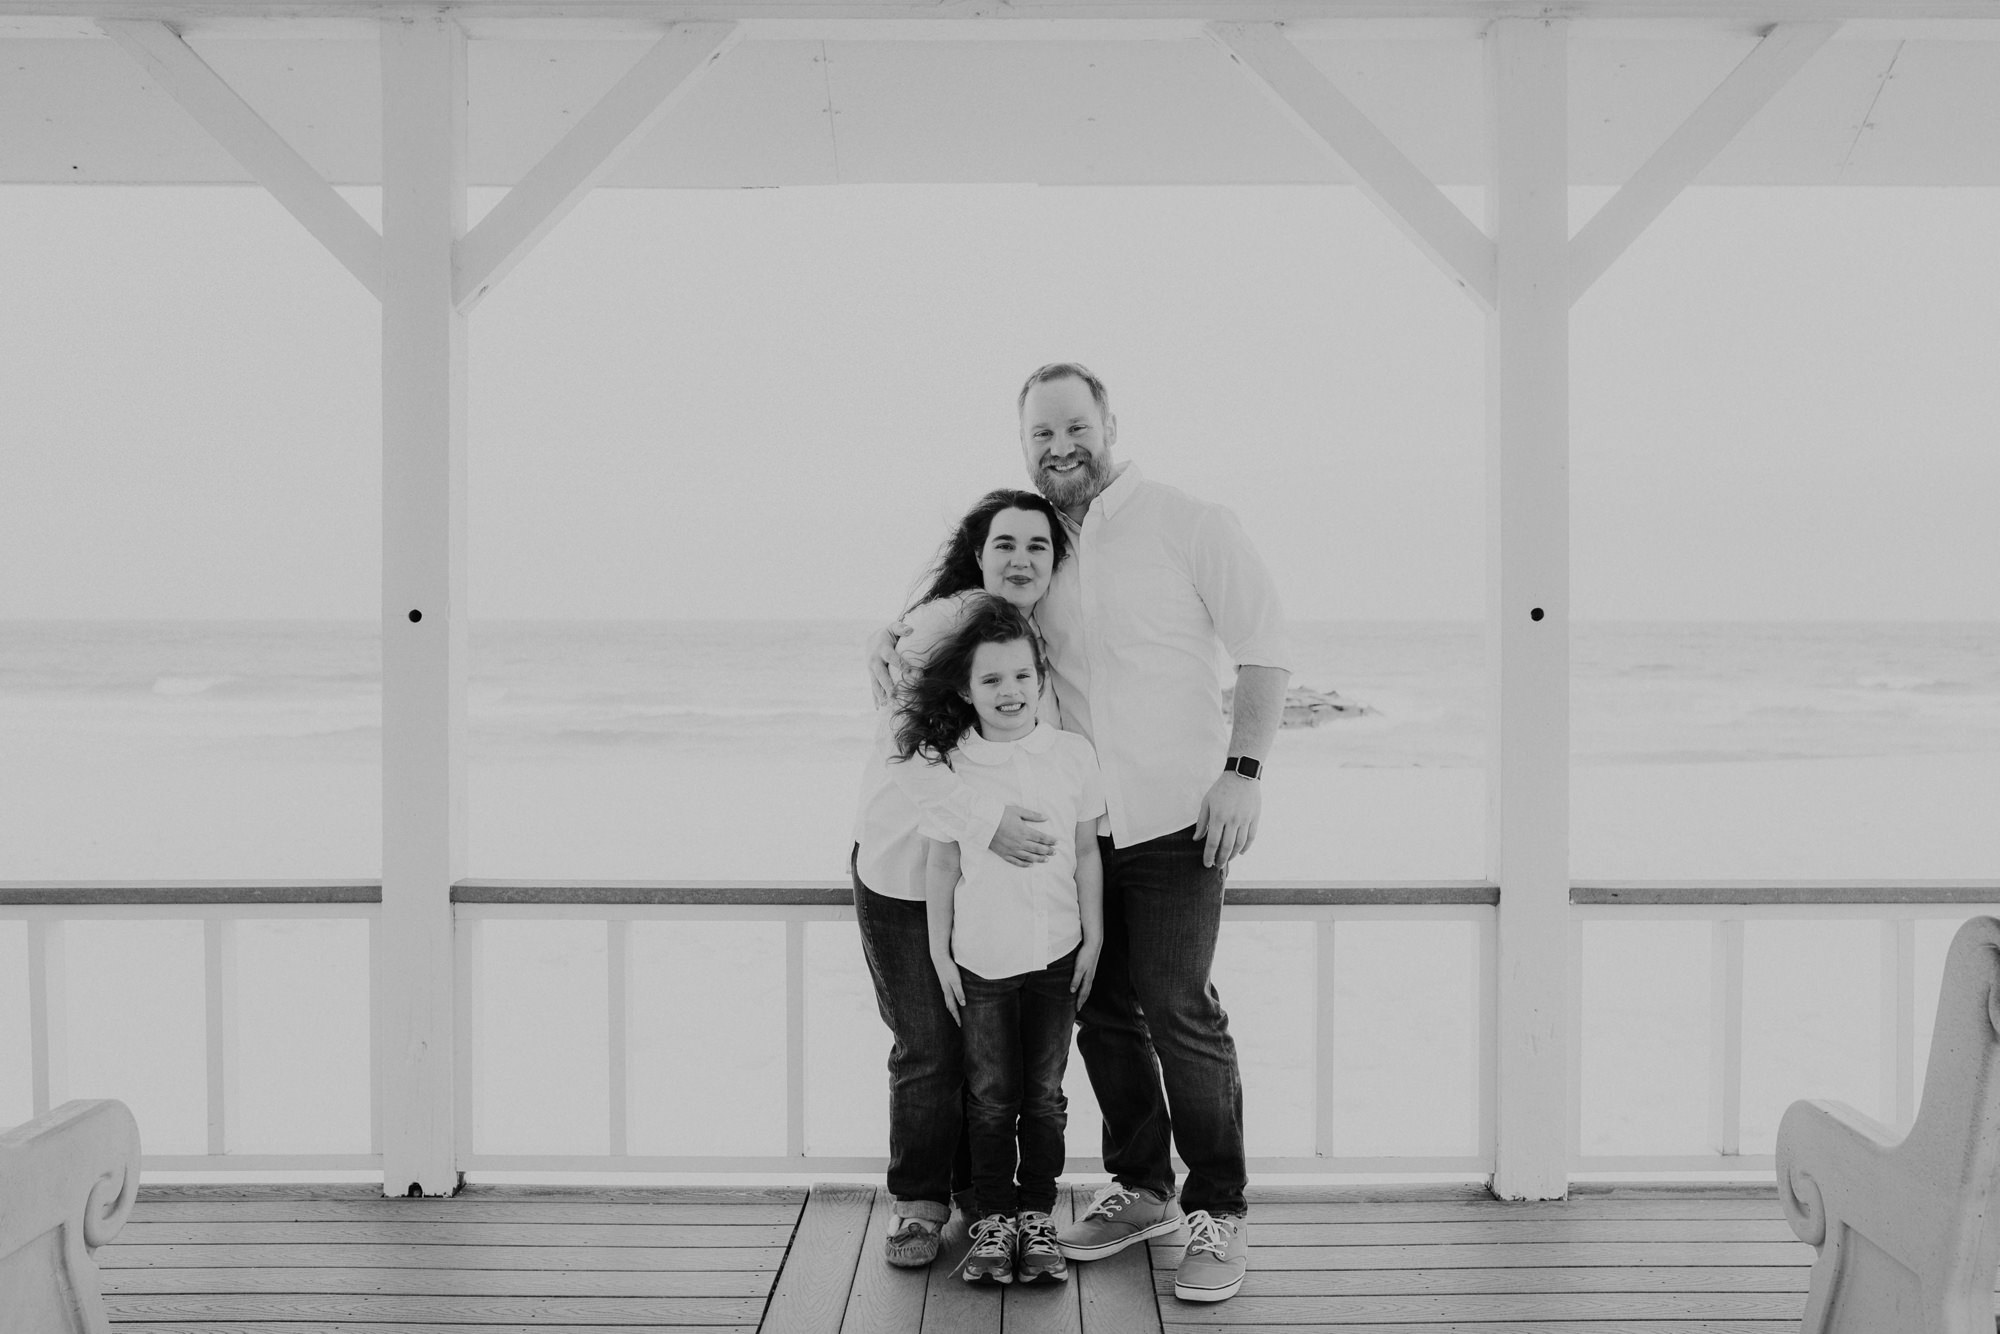 Spring Lake NJ Family Session | NJ Mini Session Photography | Family Photography | NJ Family Photography | NJ Photography | Beach Family Session Spring Lake NJ